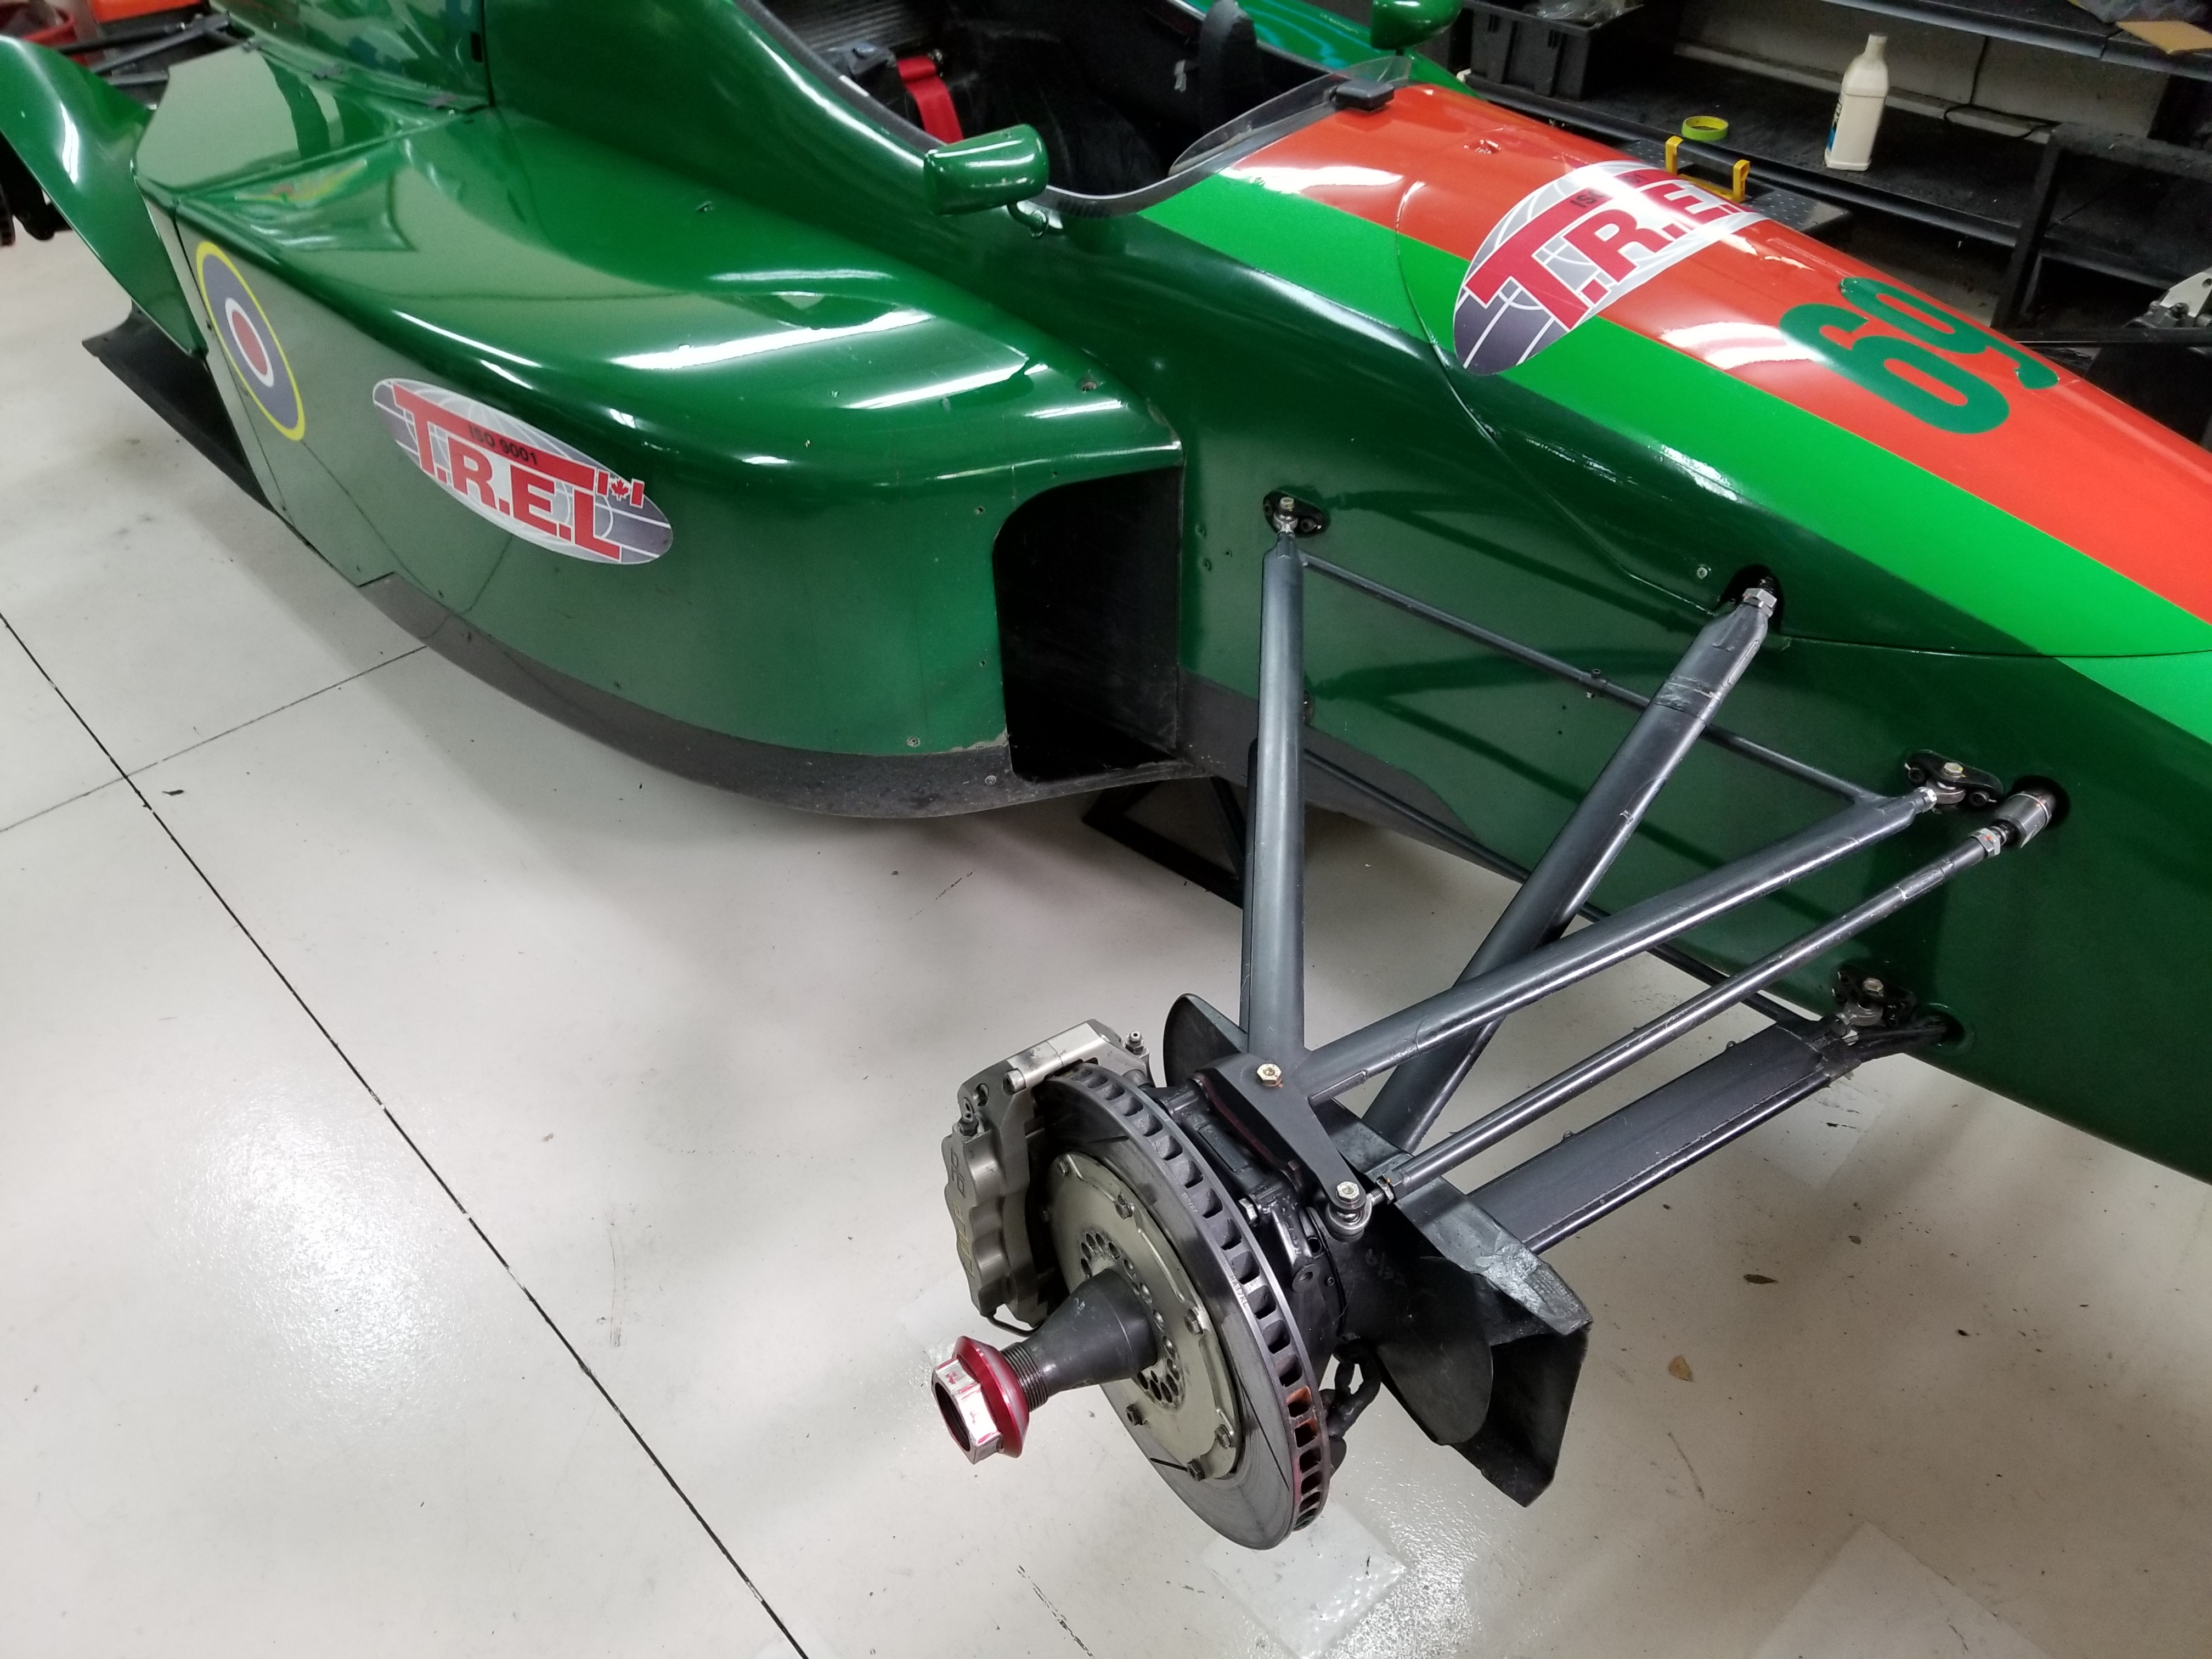 indy lights lola 97-20 Race Car For Sale - $63216